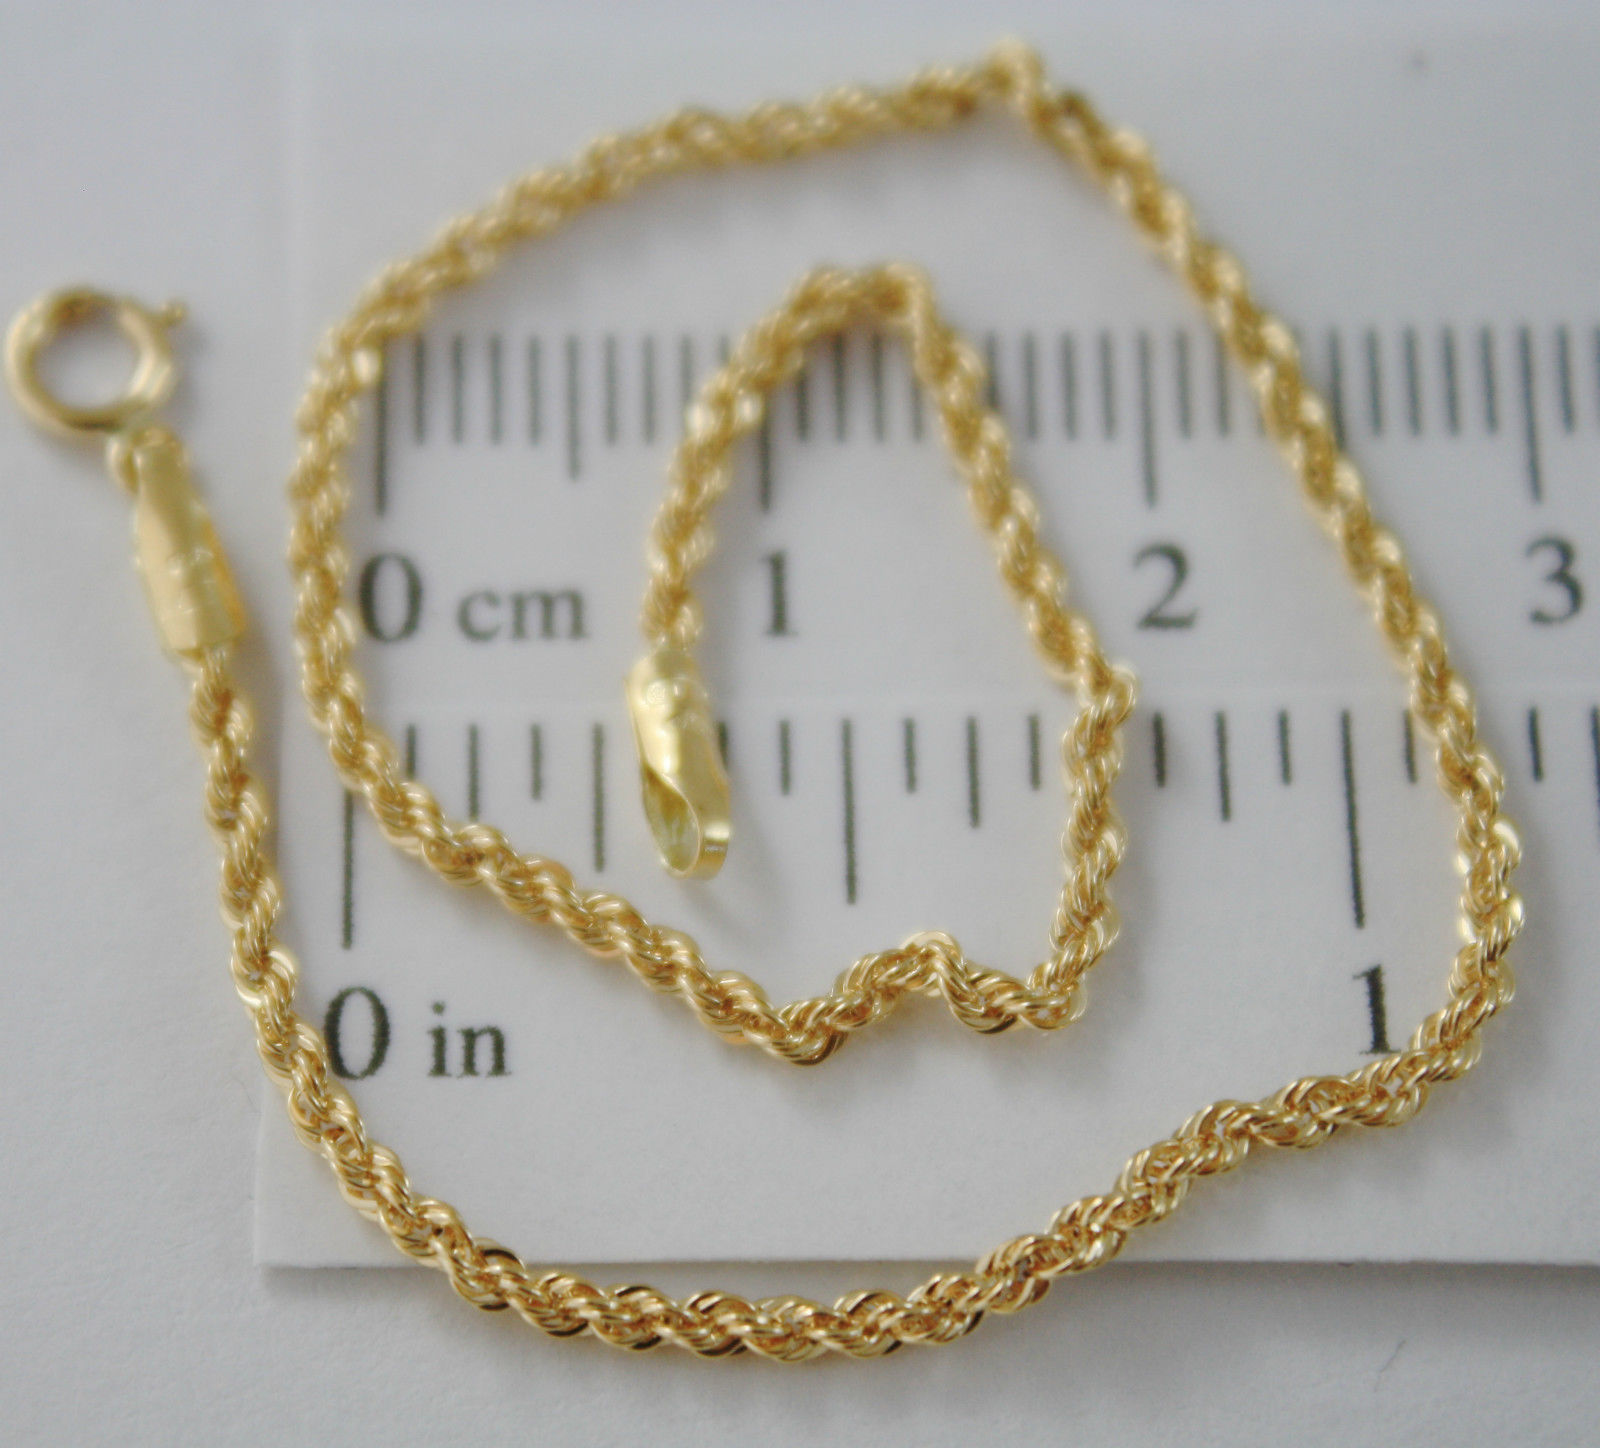 18K SOLID YELLOW GOLD BRACELET, BRAID ROPE 7.30 INCH LONG, MADE IN ITALY